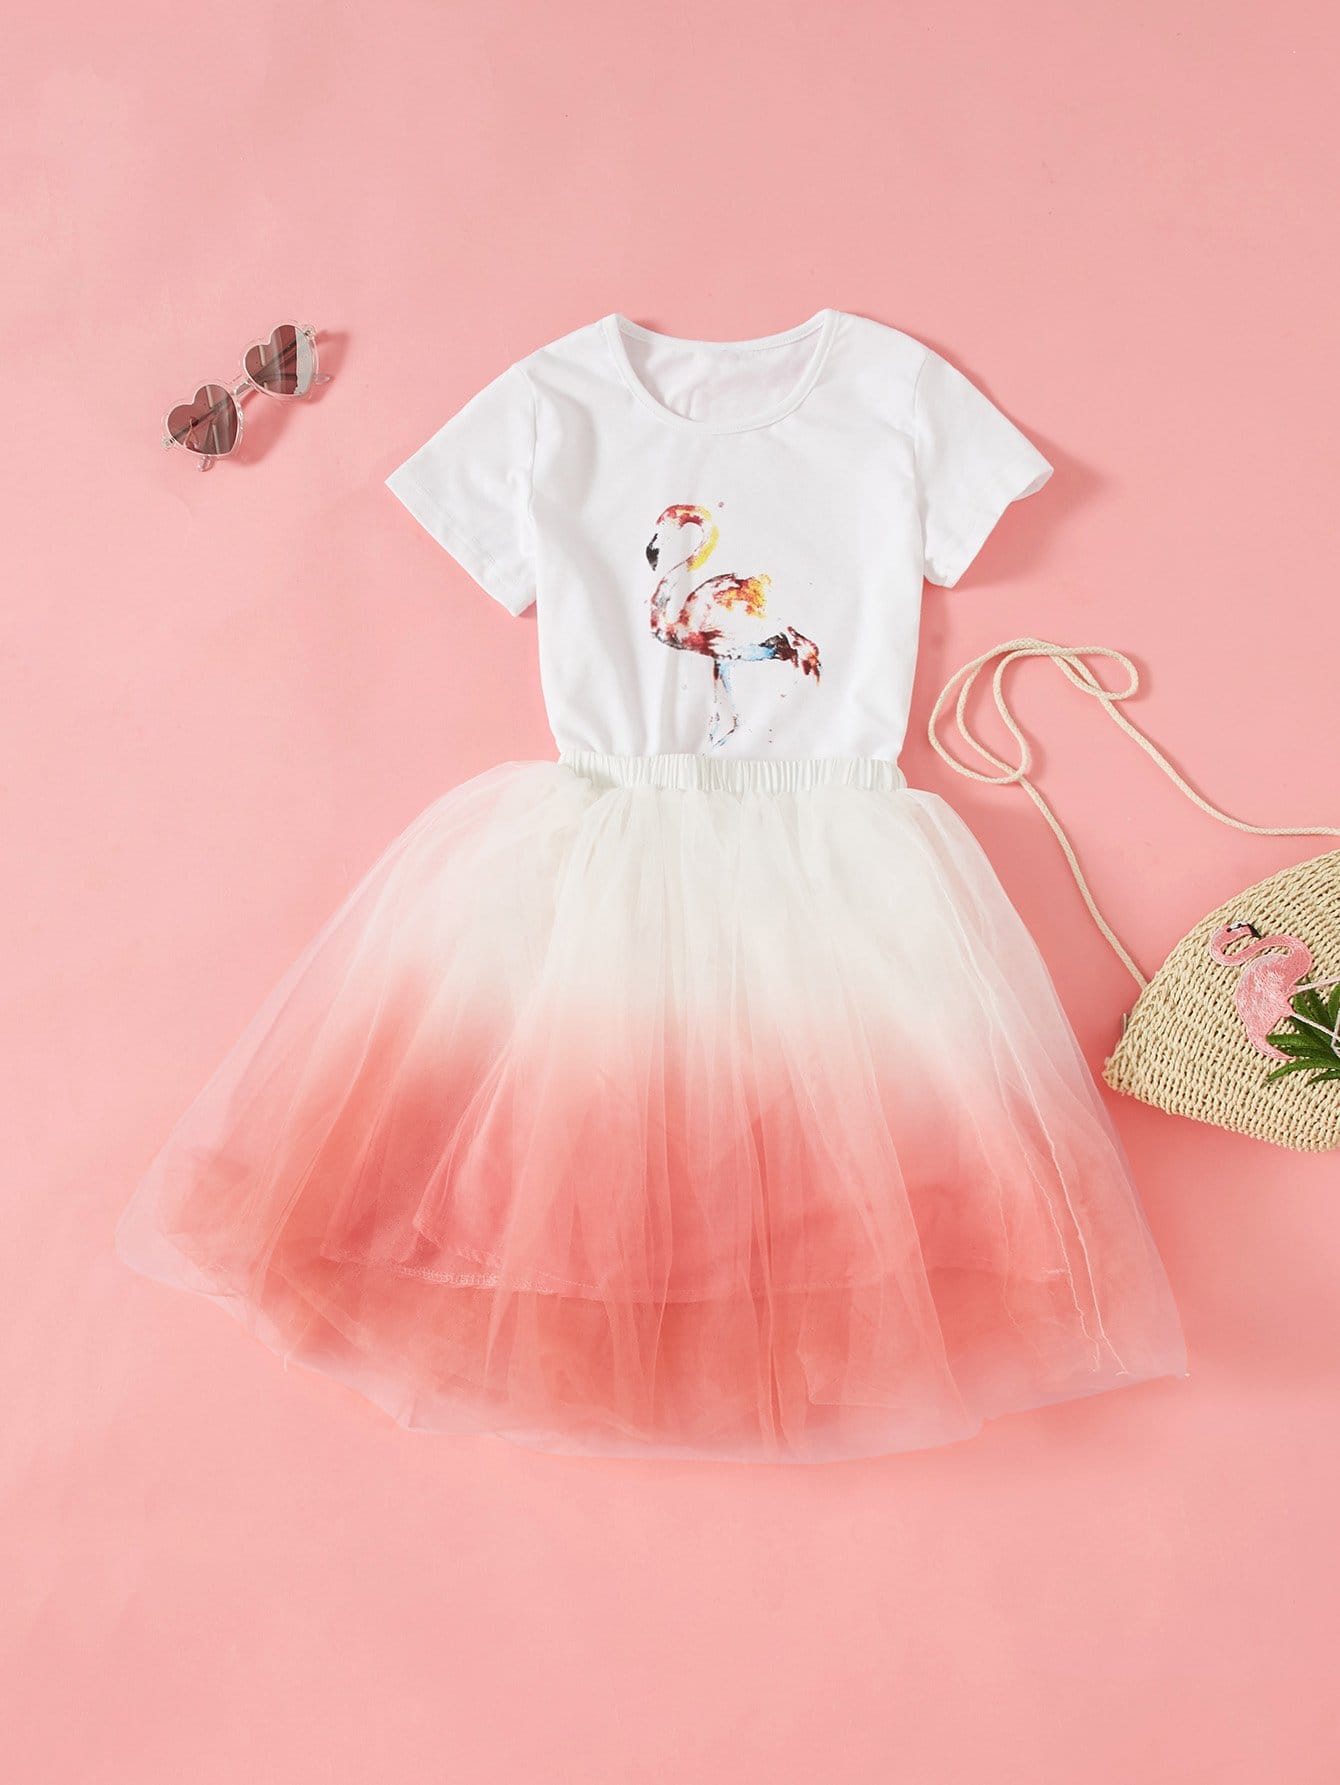 Girls 3D Applique Flamingo Top and Ombre Skirt Set my 1st st patrick day clover white top green bling sequins girls skirt set 1 8y